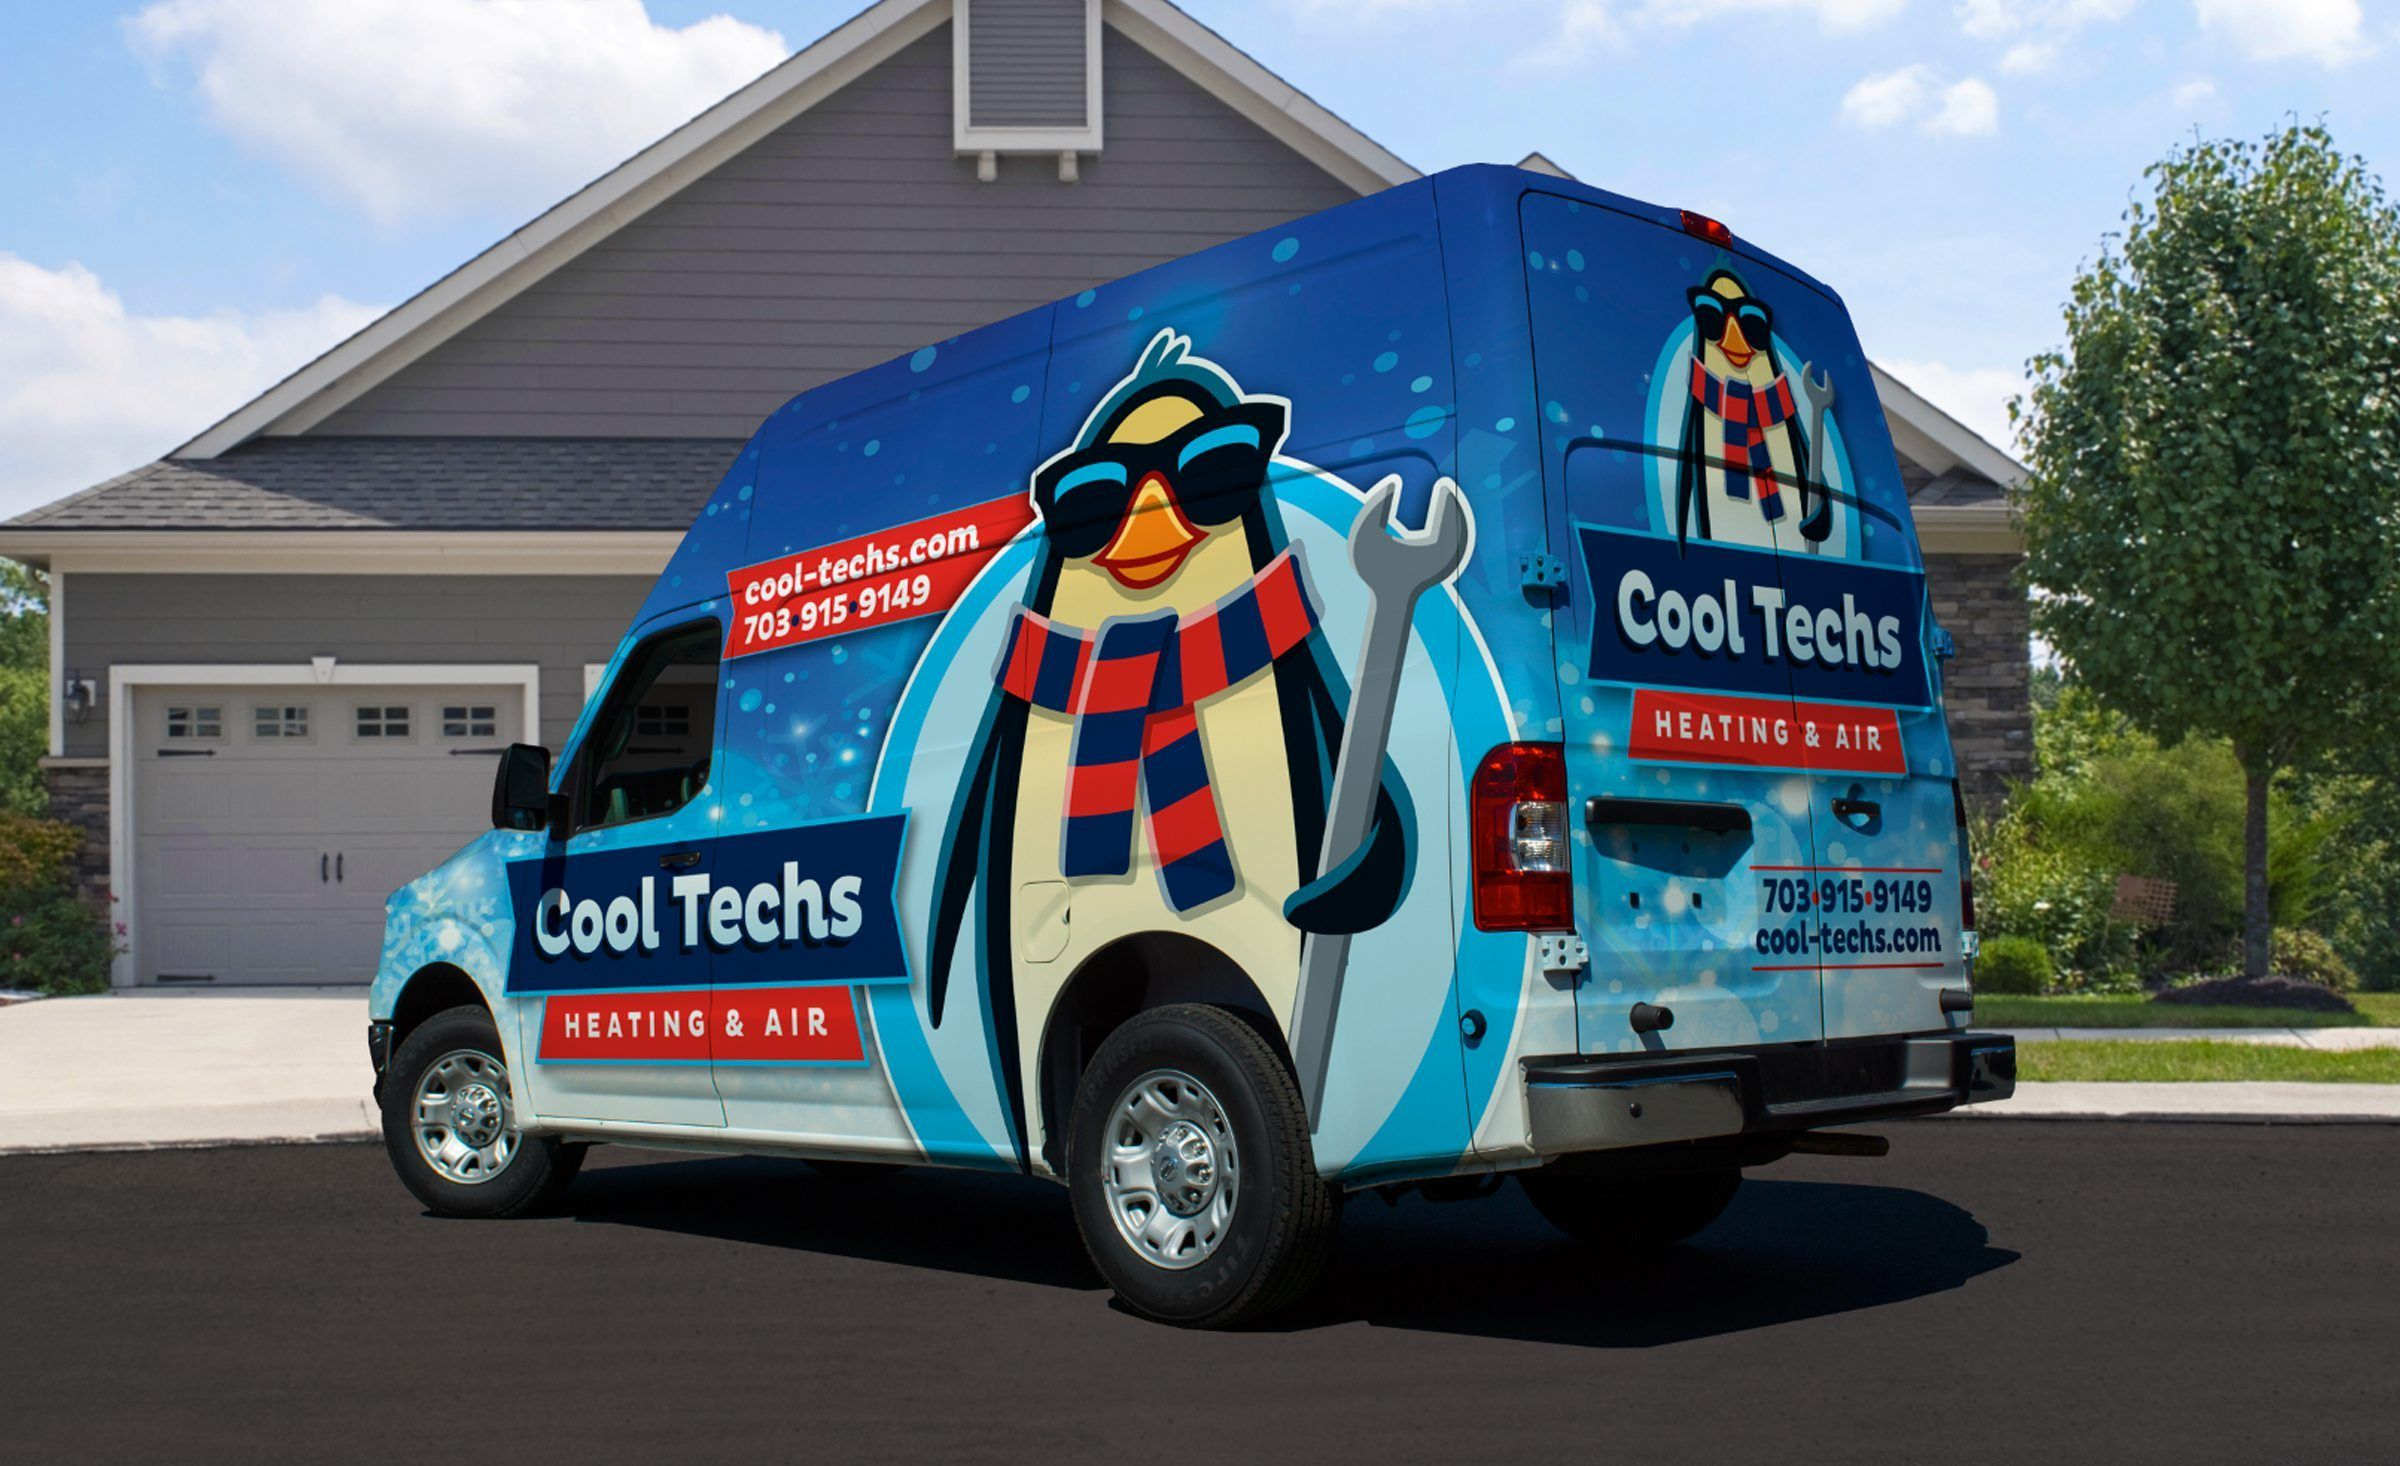 Vehicle Wrap Design For This Linden Va Based Hvac Contractor Nj Advertising Agency Nj Ad Agency Nj Truck Wr Vehicle Wrap Advertising Cool Trucks Car Wrap